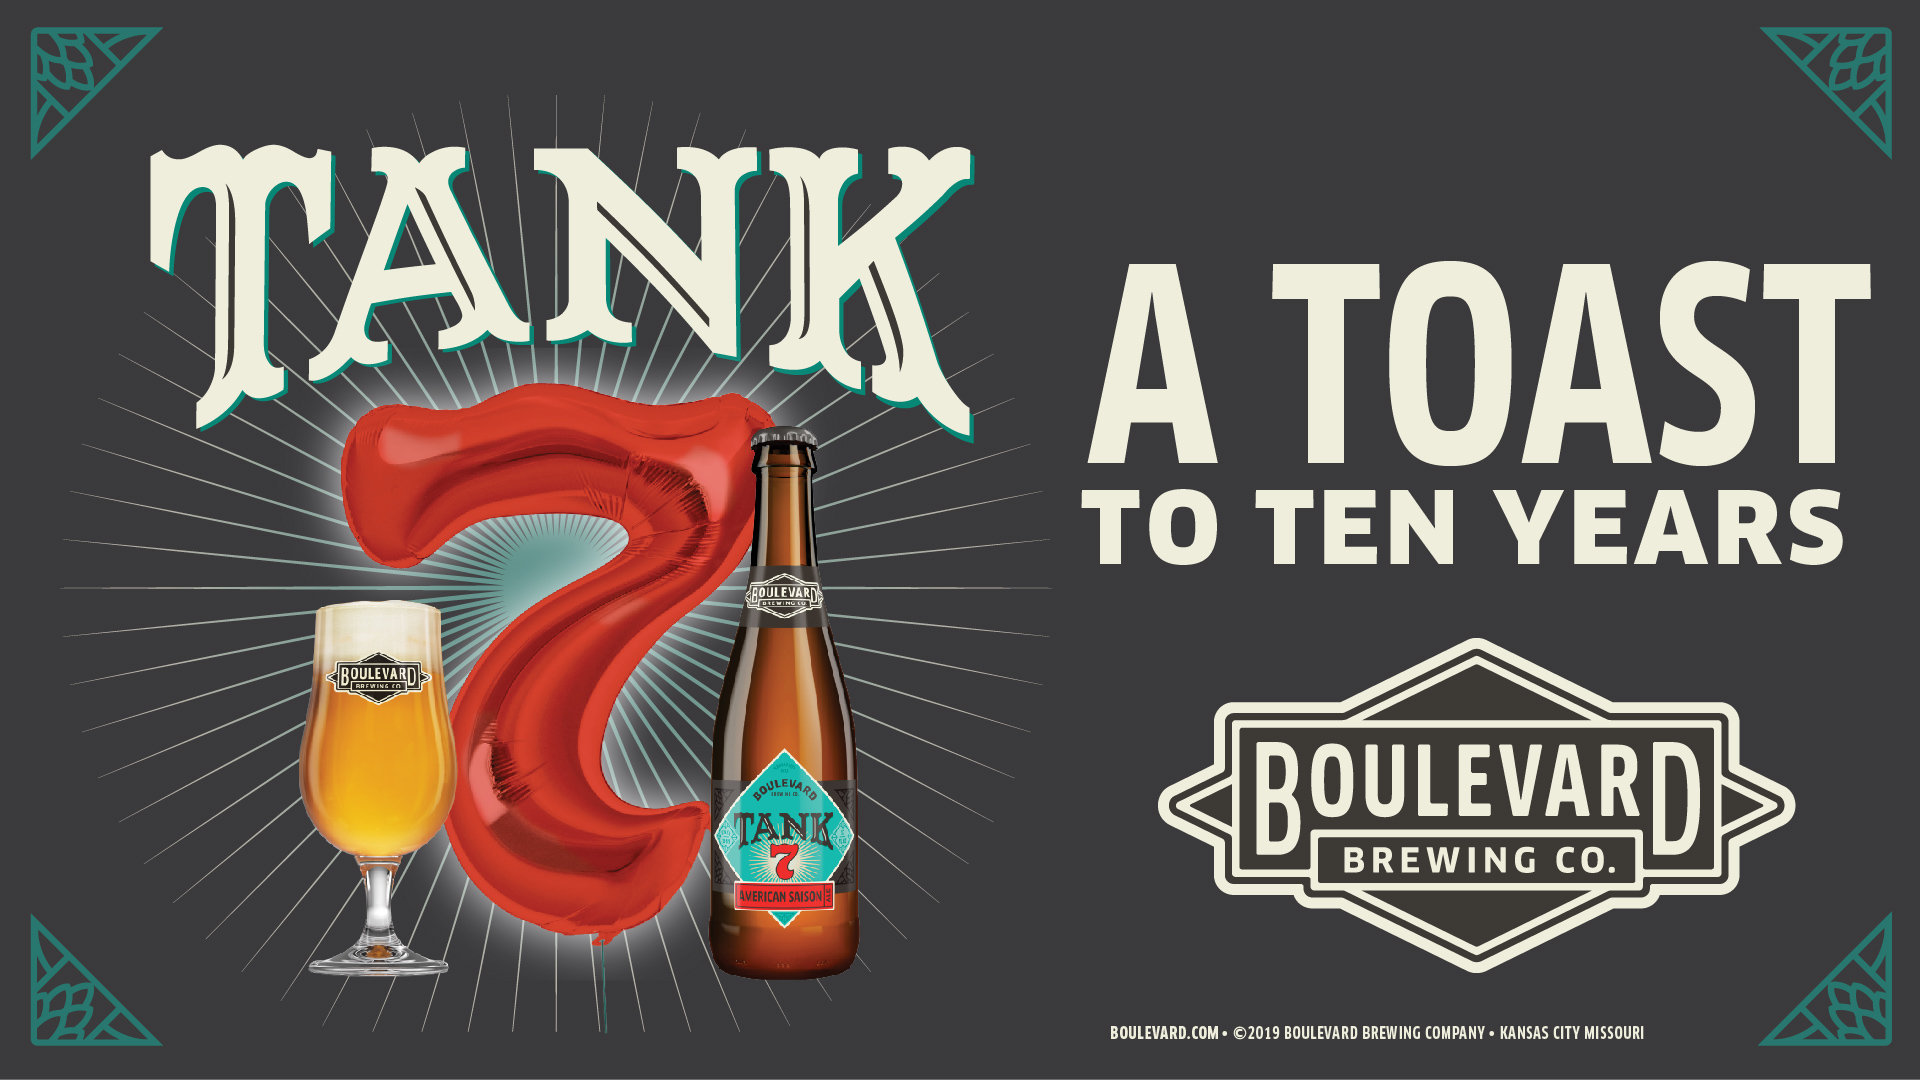 A toast to ten years - Tank 7